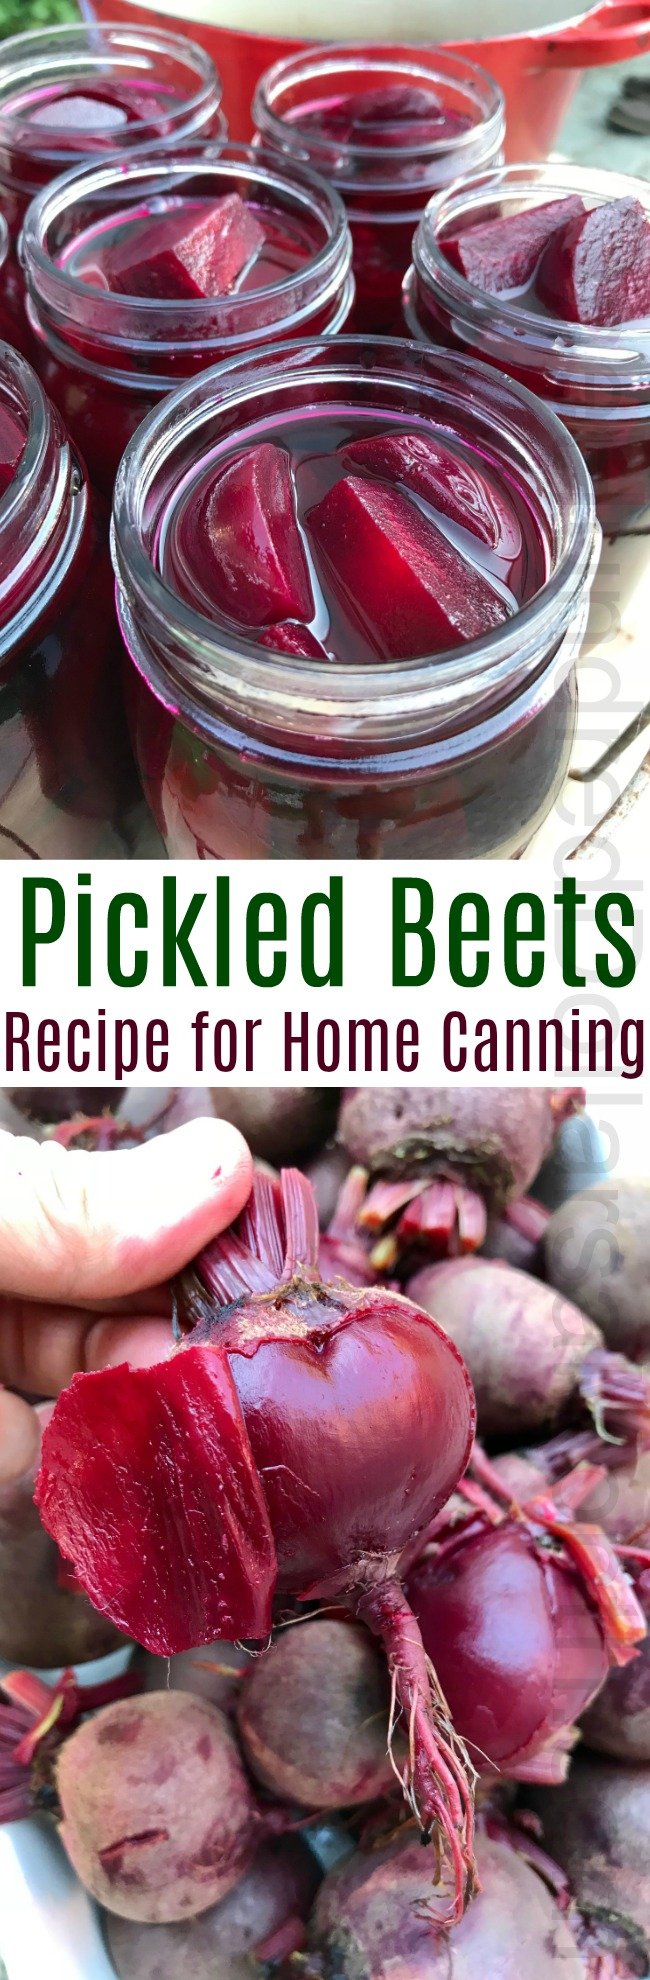 Canning Recipe for Old Fashioned Pickled Beets {No Funky Spices!}